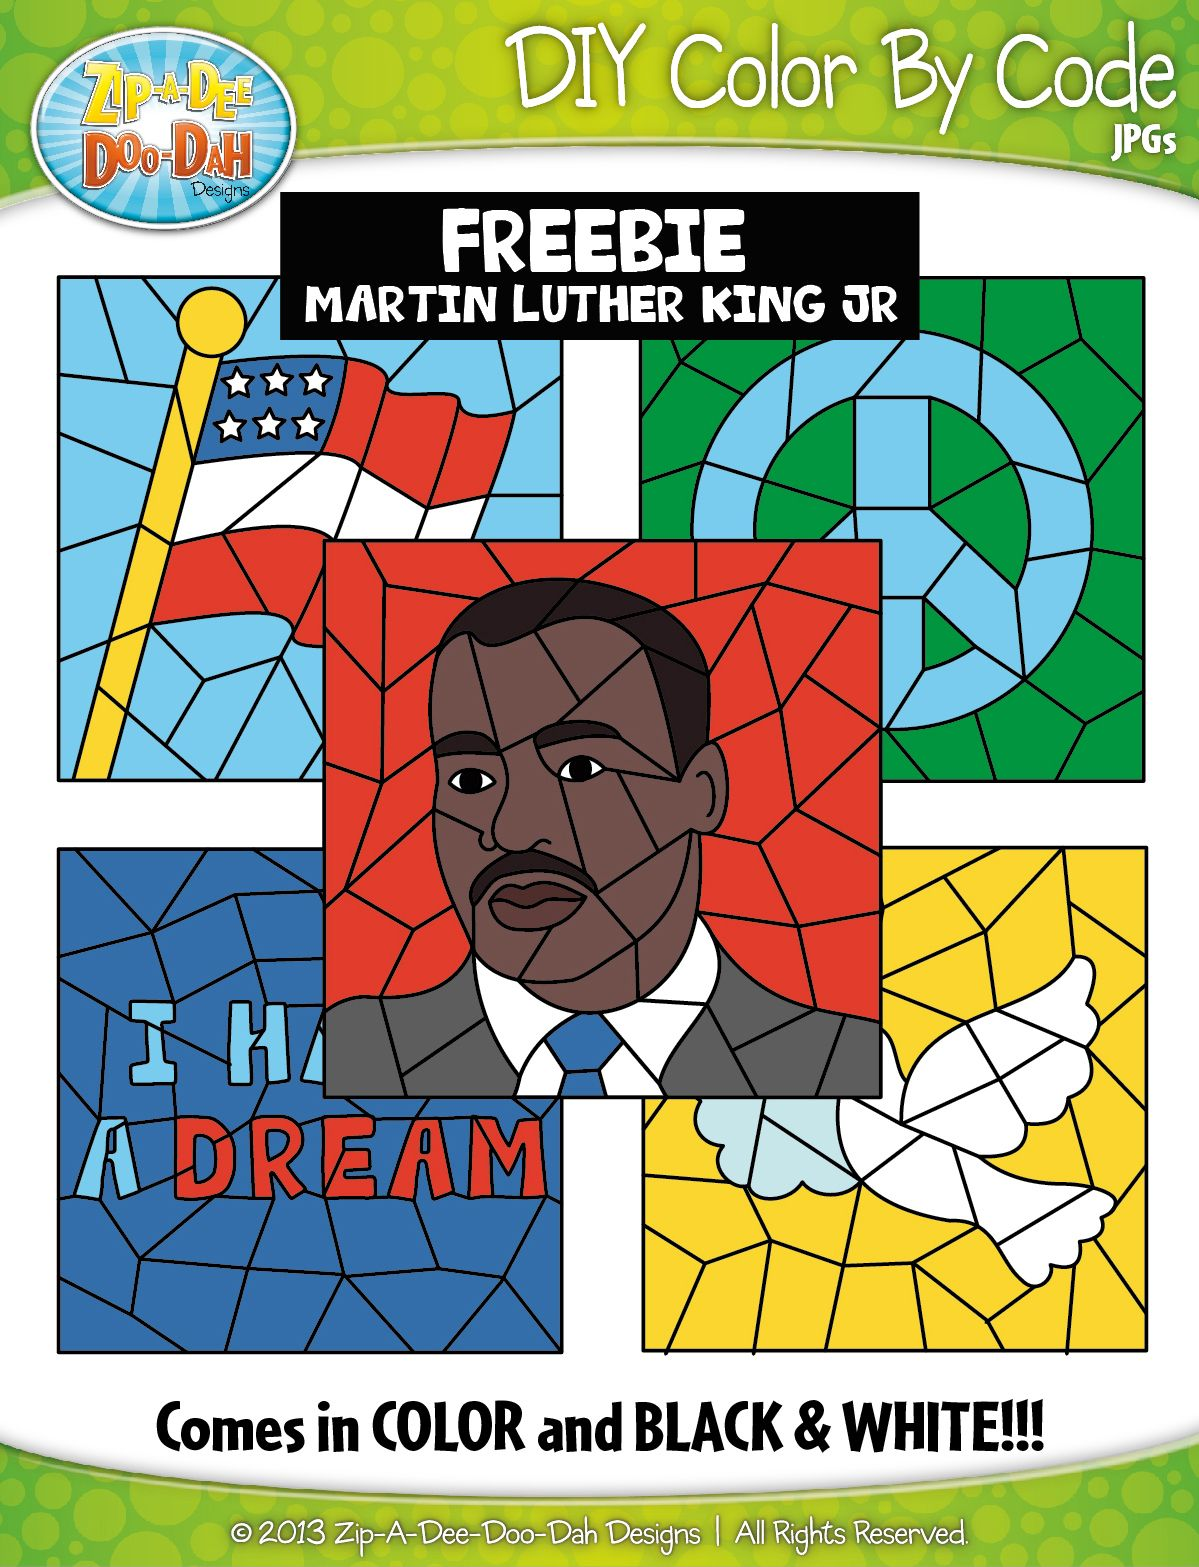 Free Martin Luther King Jr Create Your Own Color By Code